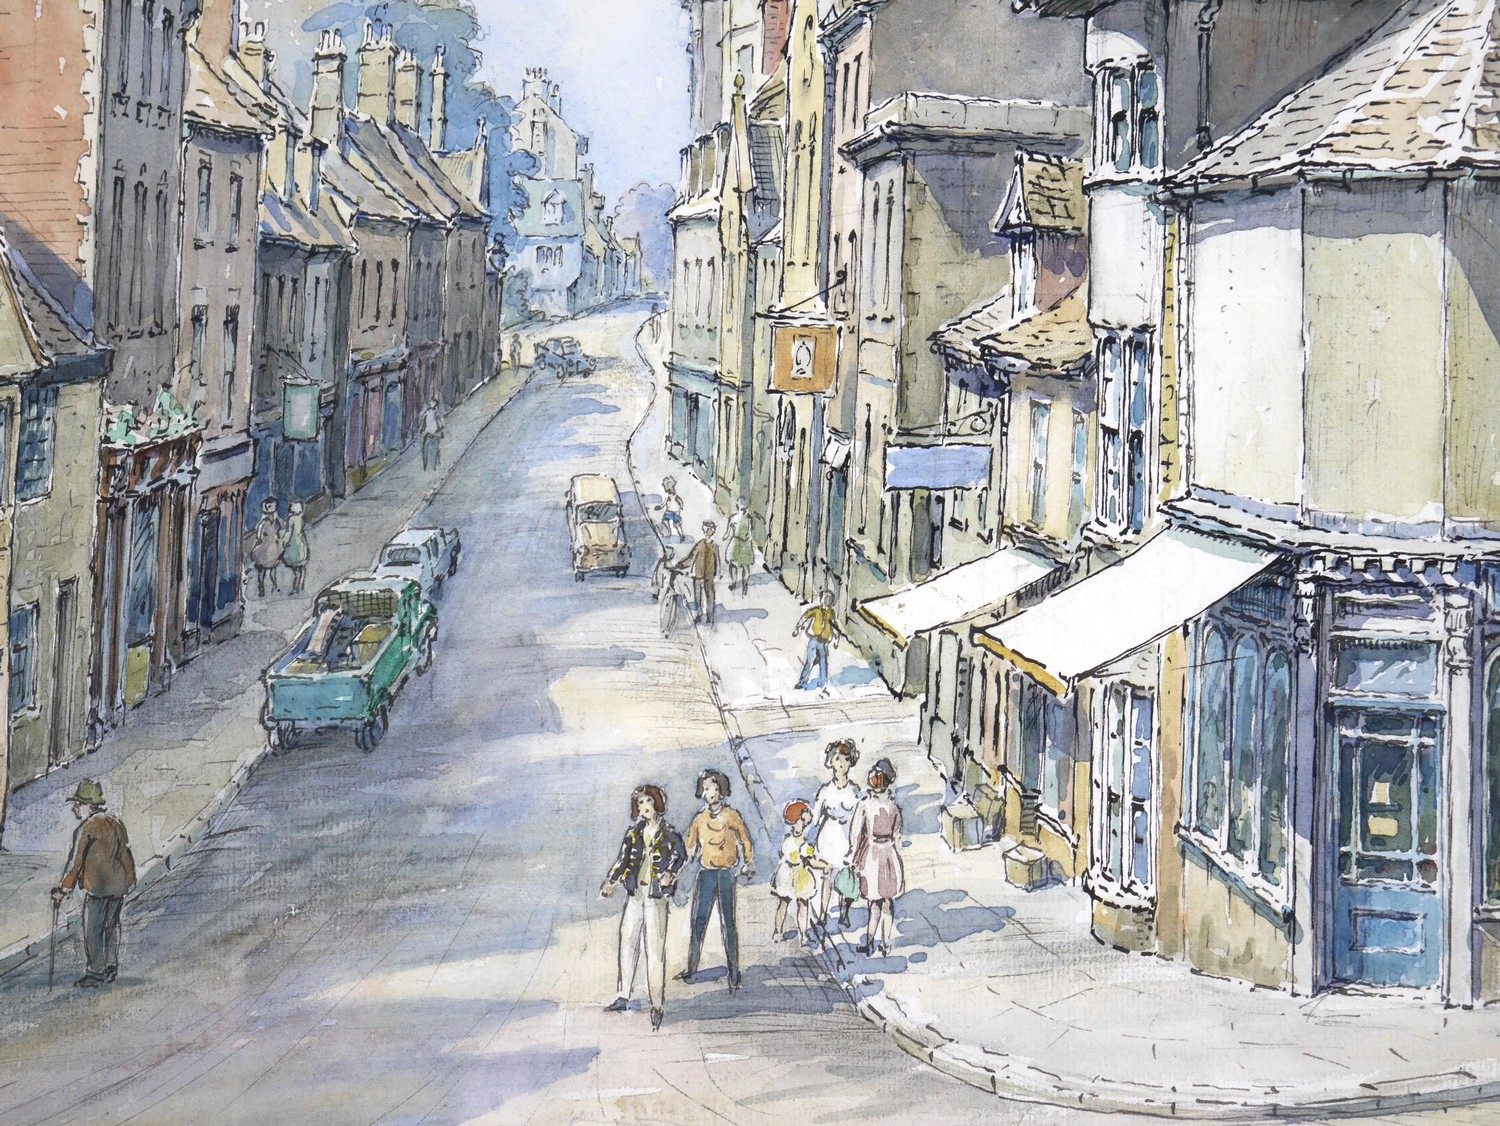 Wilfrid Rene Wood (British, 1888-1976): a view of Stamford, depicting ?All Saints Place? (No 48), - Image 3 of 7